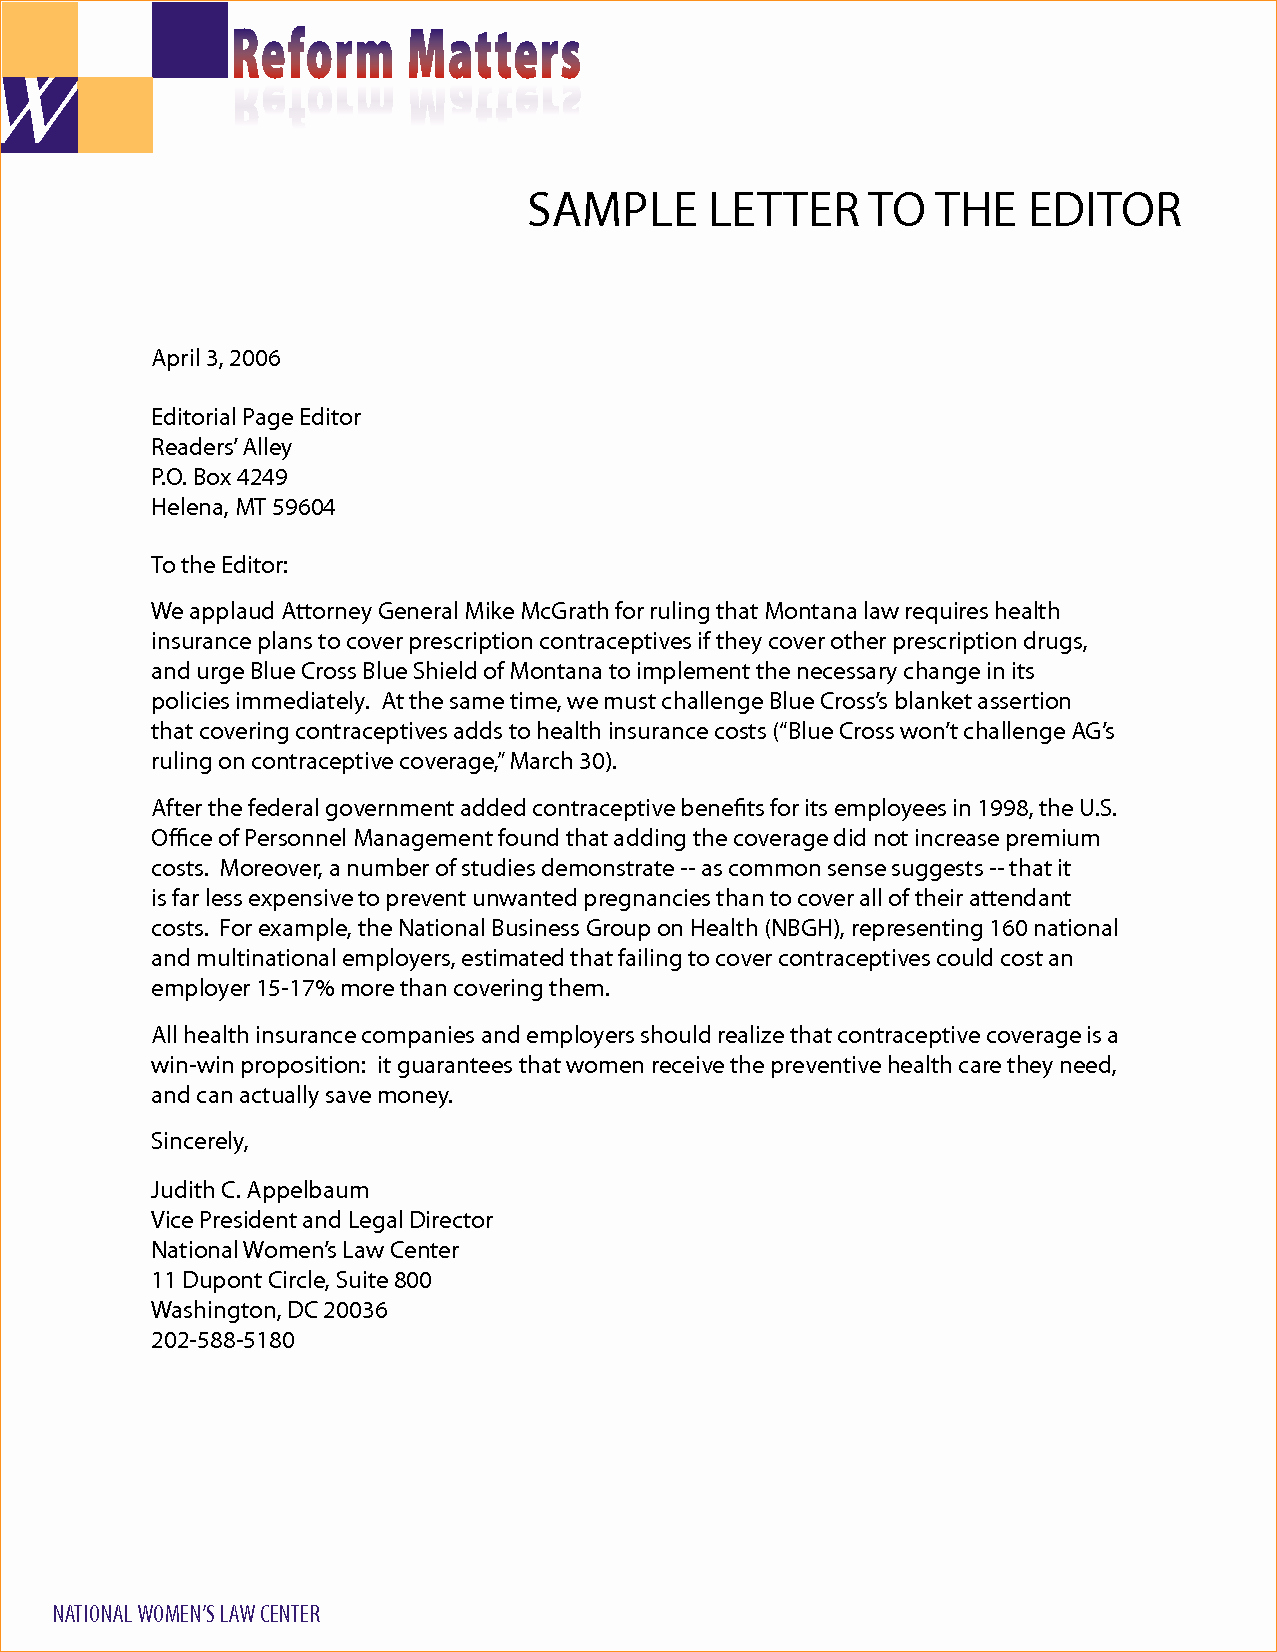 Letter to the Editor Templates Lovely A formal Letter to the Editor Sample Business Proposal